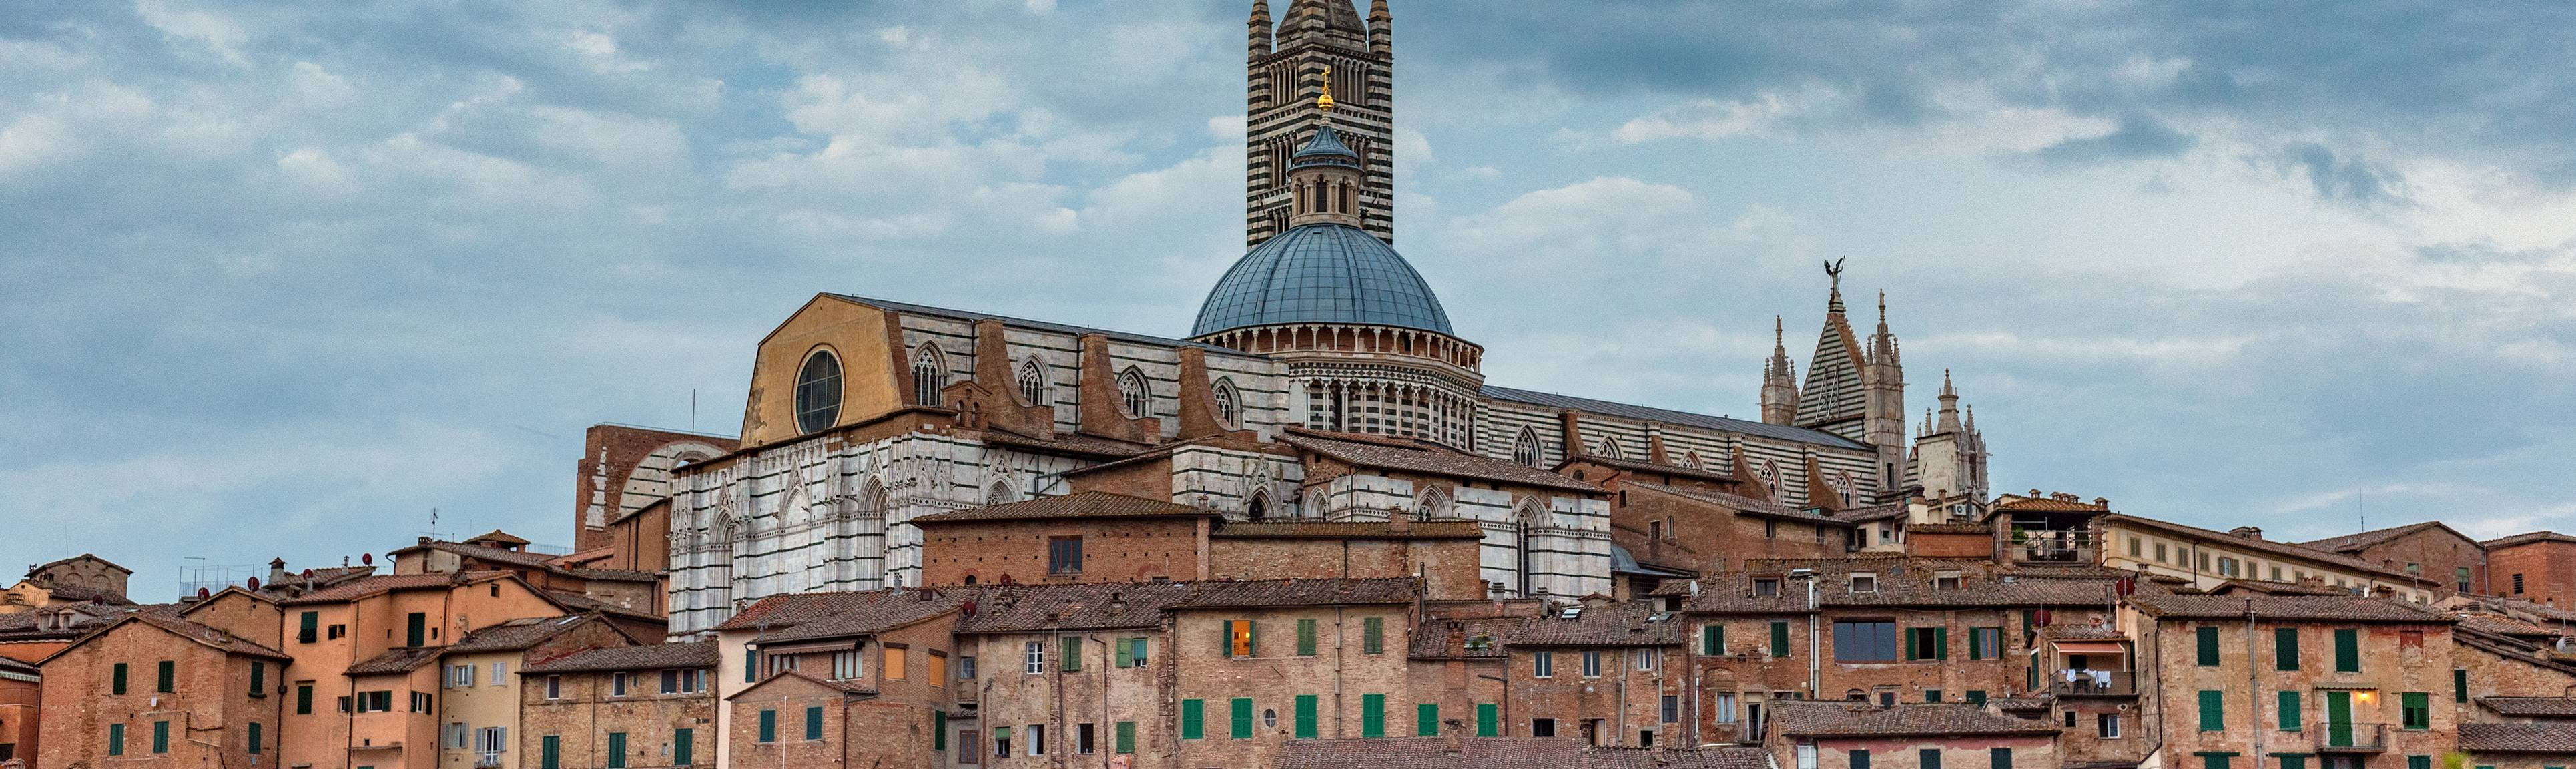 Looking over the skyline and rooftops of Siena, Italy